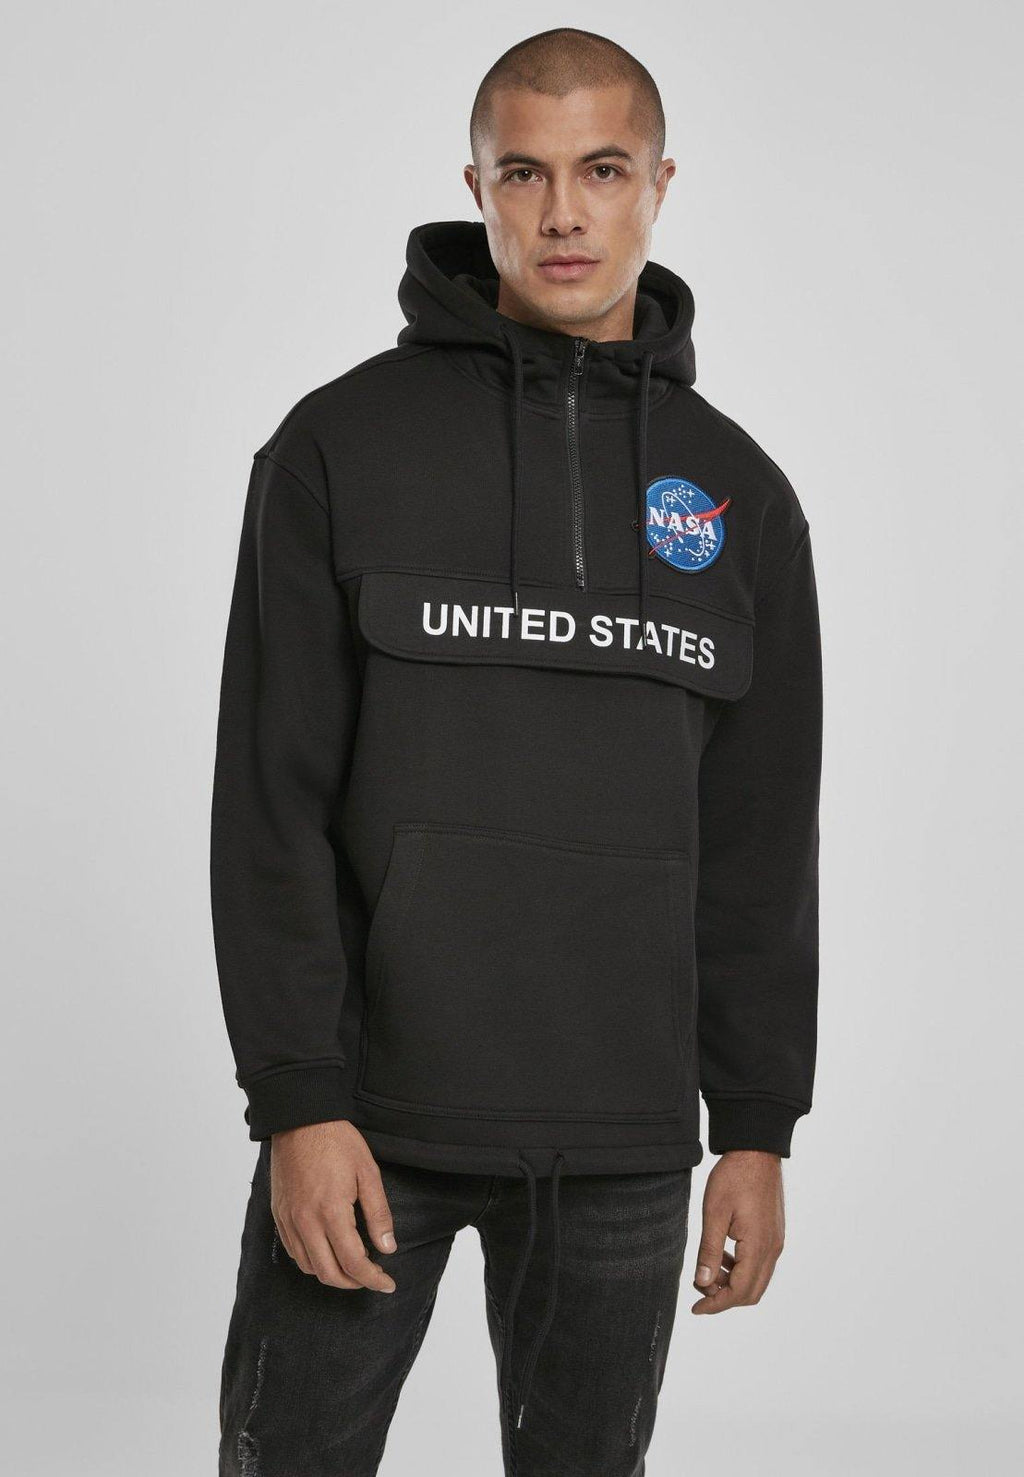 NASA Definition Pull Over Hoodie - DadiTude